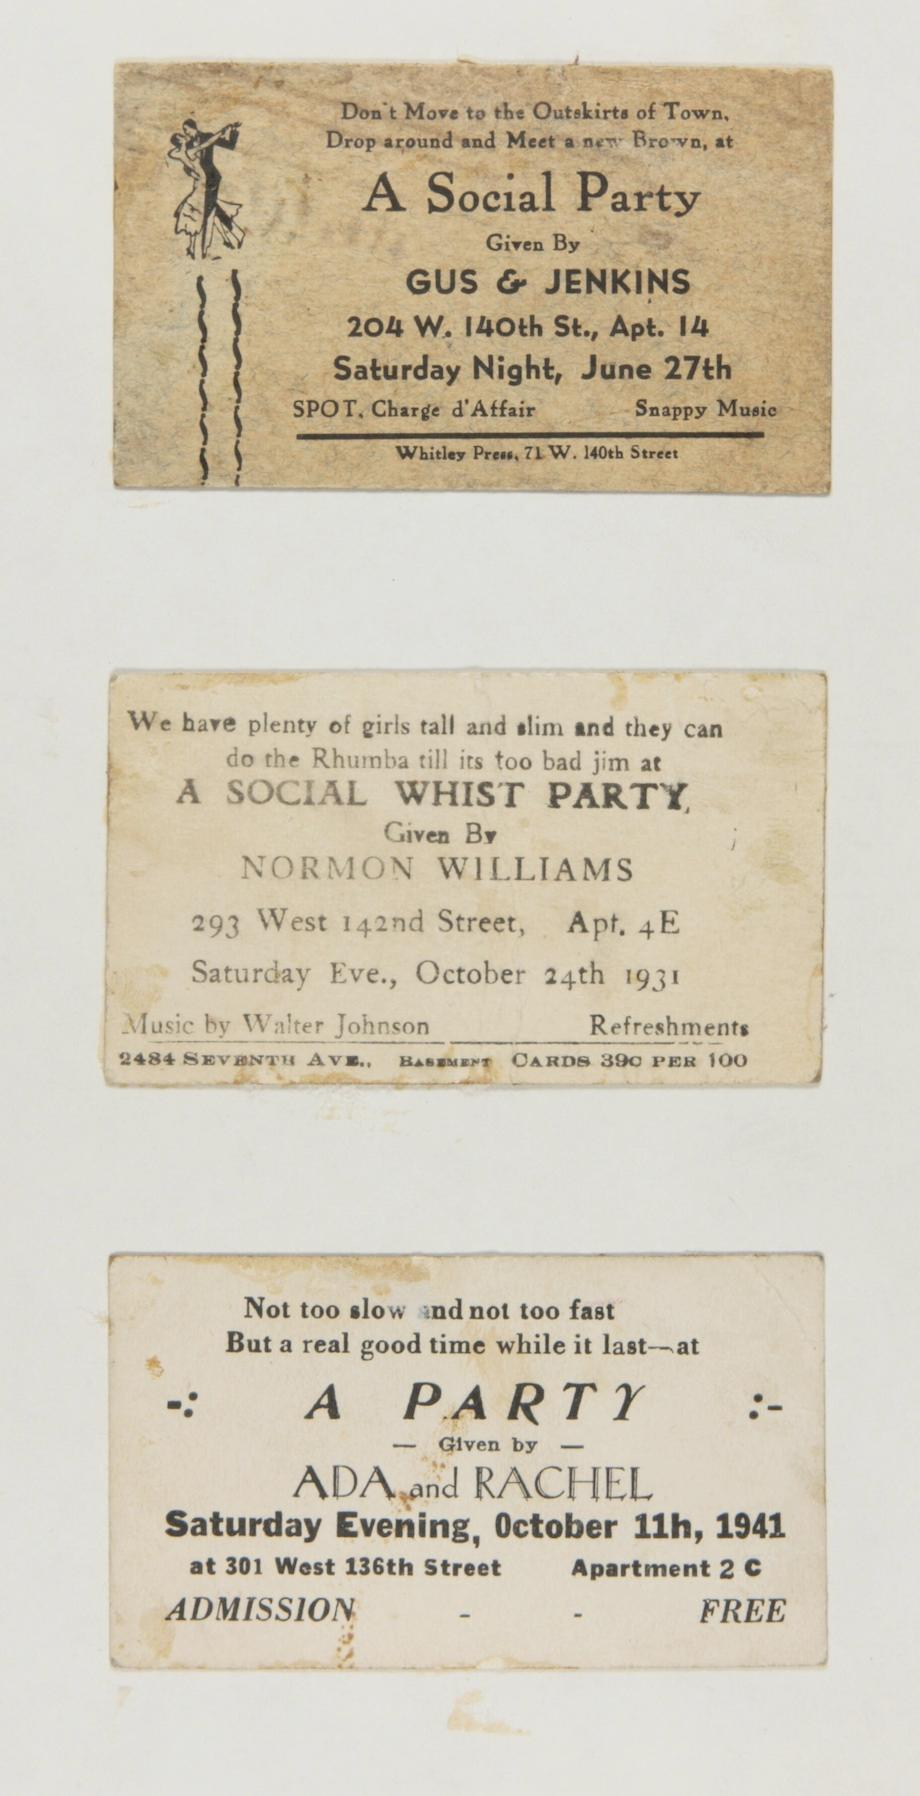 "npr:   These cards, collected by Langston Hughes and held with his papers in Yale's Beinecke Rare Book and Manuscript Library, advertised ""rent parties"" to be held in Harlem in the 1940s and 1950s.   Hosts of these gatherings opened up their apartments for a night, charging a fee to guests in return for live music, dancing, and socializing. Food was extra, and the accumulated cash went to help the hosts pay their rent. Sandra L. West points out that black tenants in Harlem during the 1920s and 1930s faced discriminatory rental rates. That, along with the generally lower salaries for black workers, created a situation in which many people were short of rent money. These parties were originally meant to bridge that gap.  Langston Hughes' collection of rent party cards : Slate.com  Photo: Courtesy the Beinecke Rare Book & Manuscript Library, Yale University. These sound like a good time and remind me of the rent party on ""Good Times."" — tanya b."